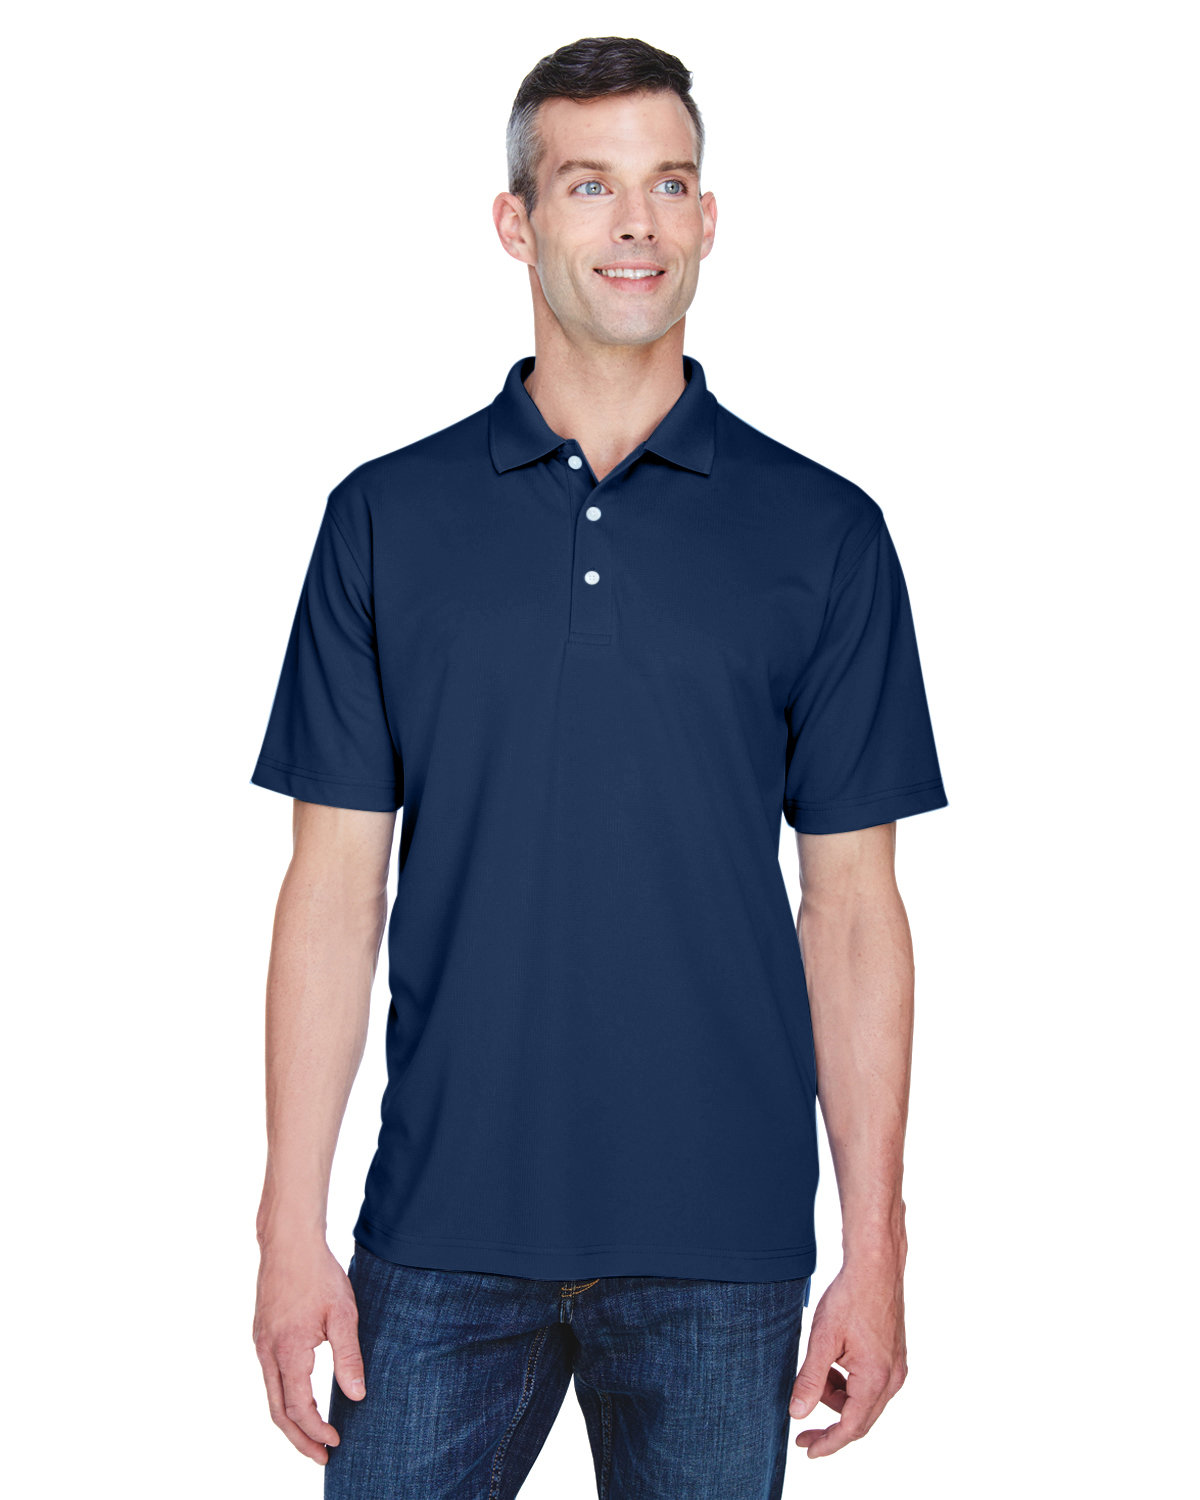 UltraClub Men's Cool & Dry Stain-Release Performance Polo NAVY